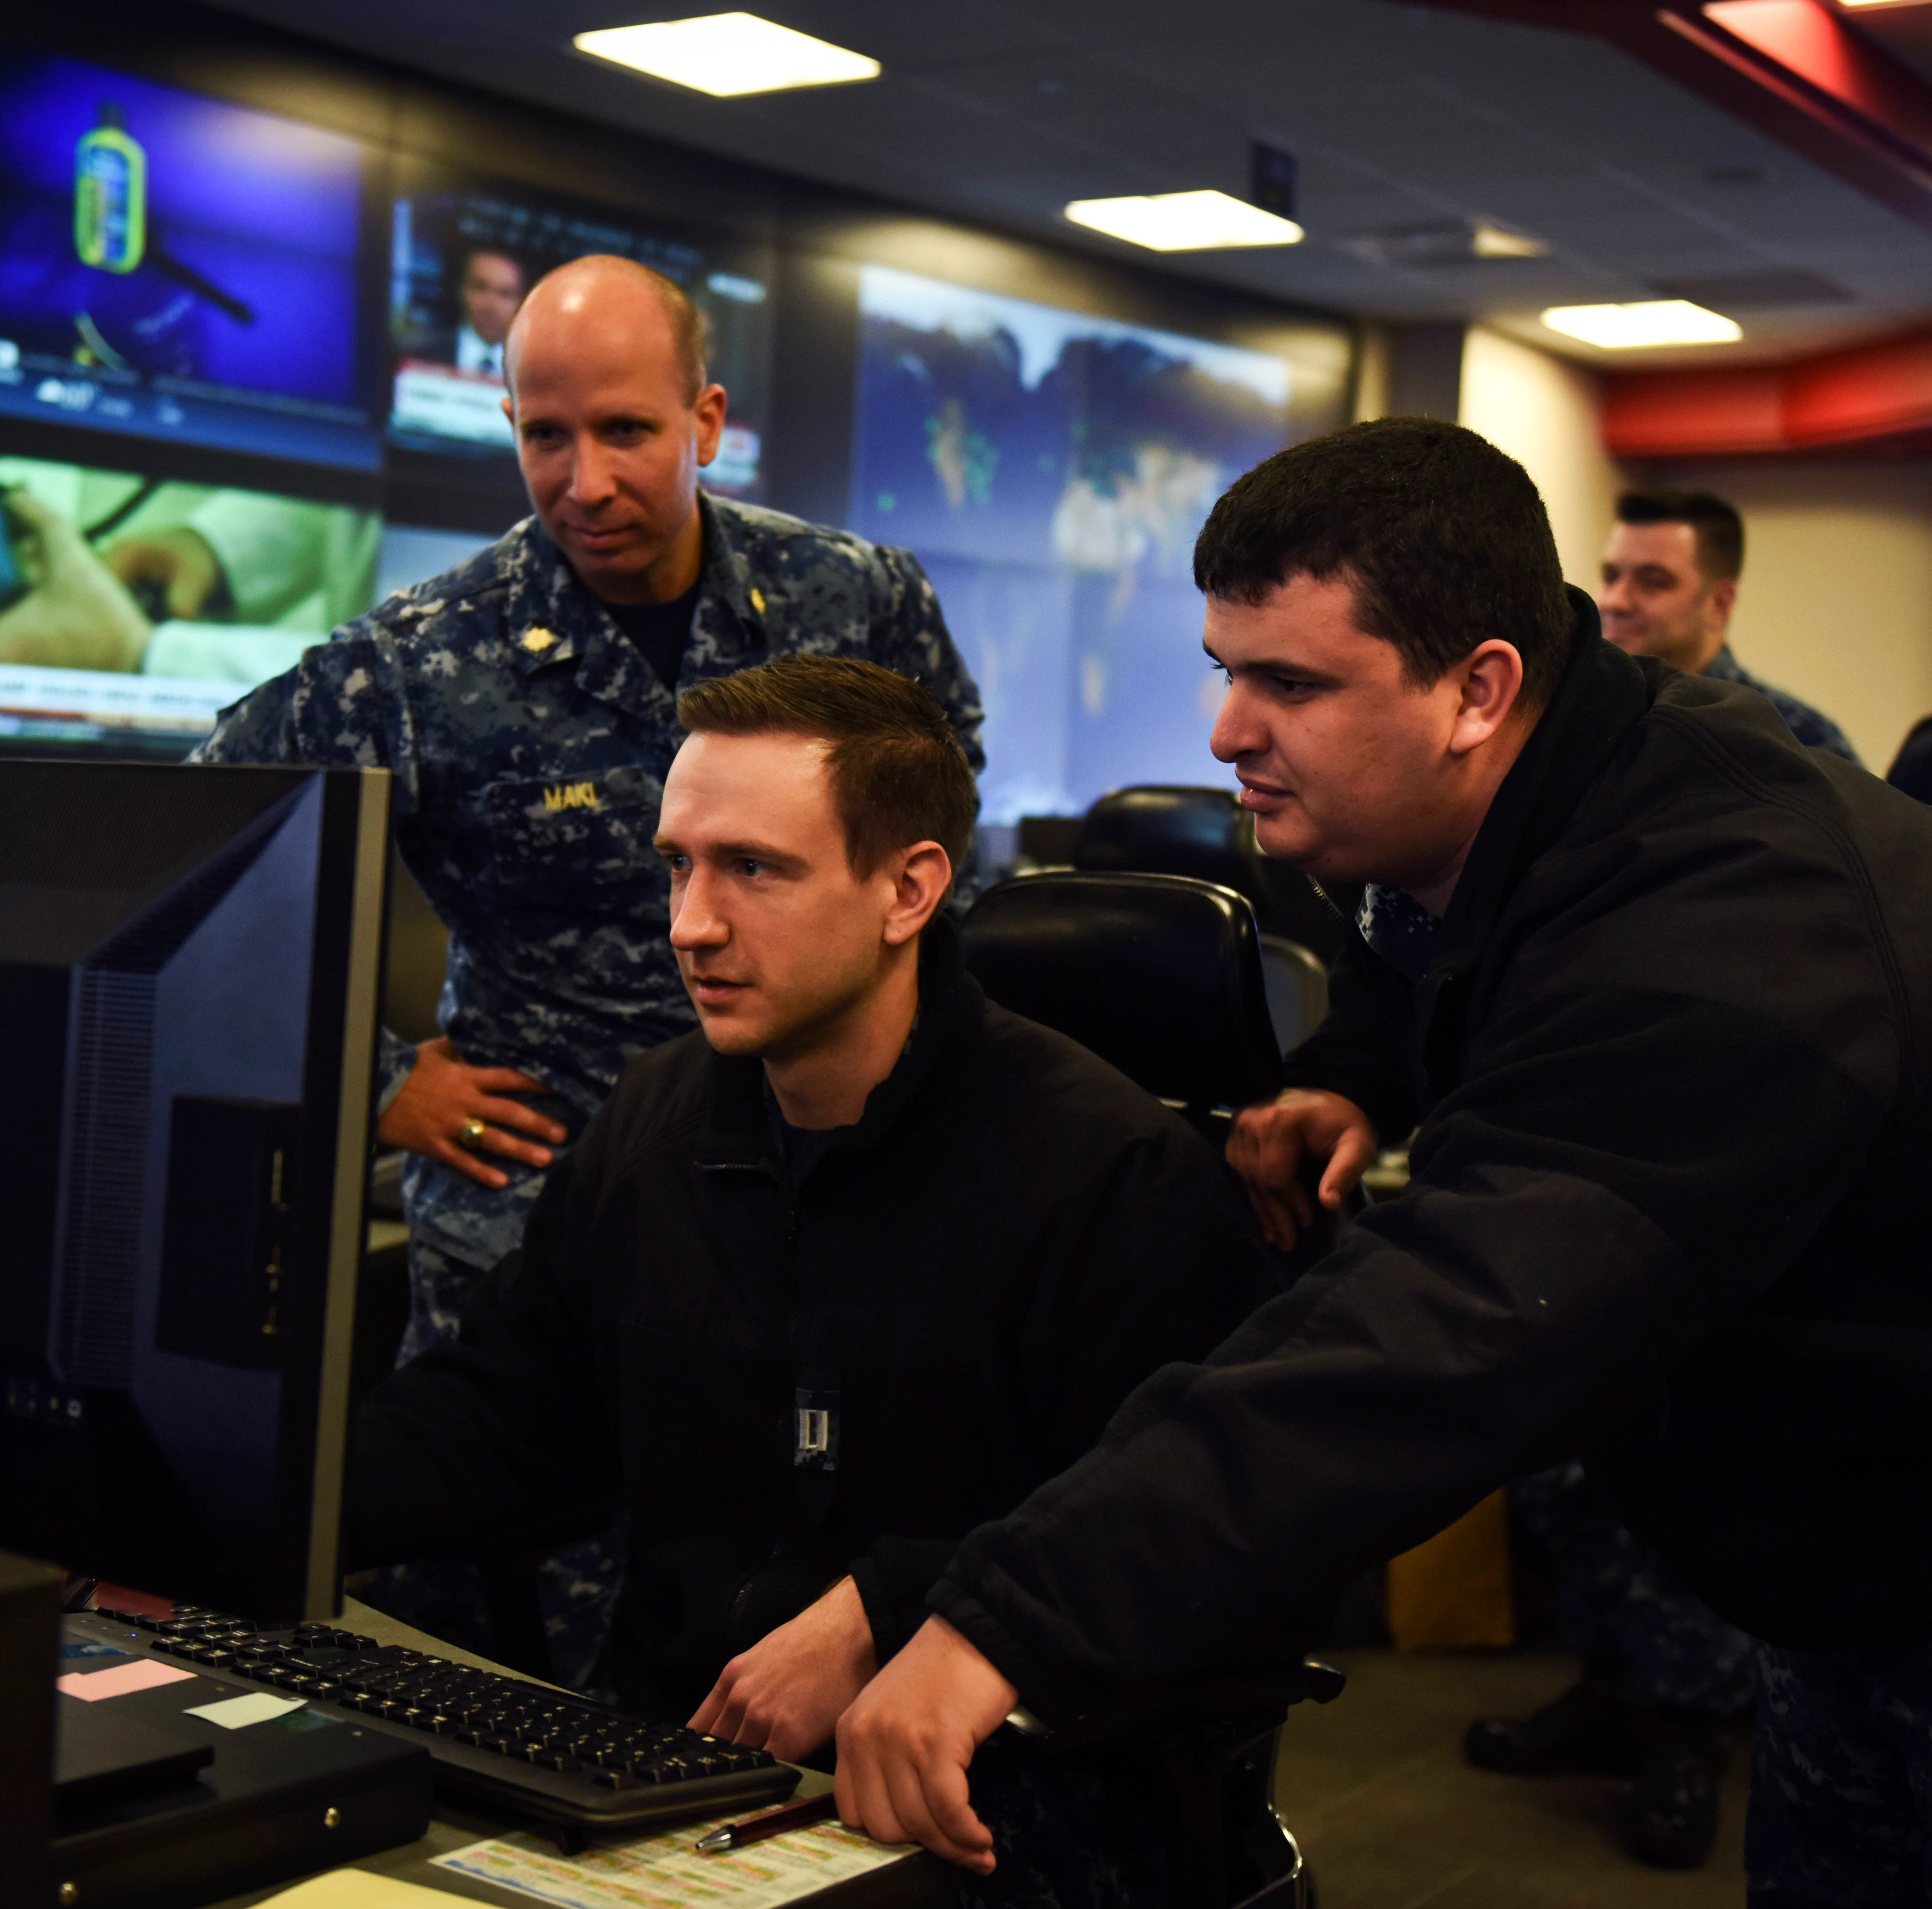 Not just for the private sector, Navy seeks talented workforce, too